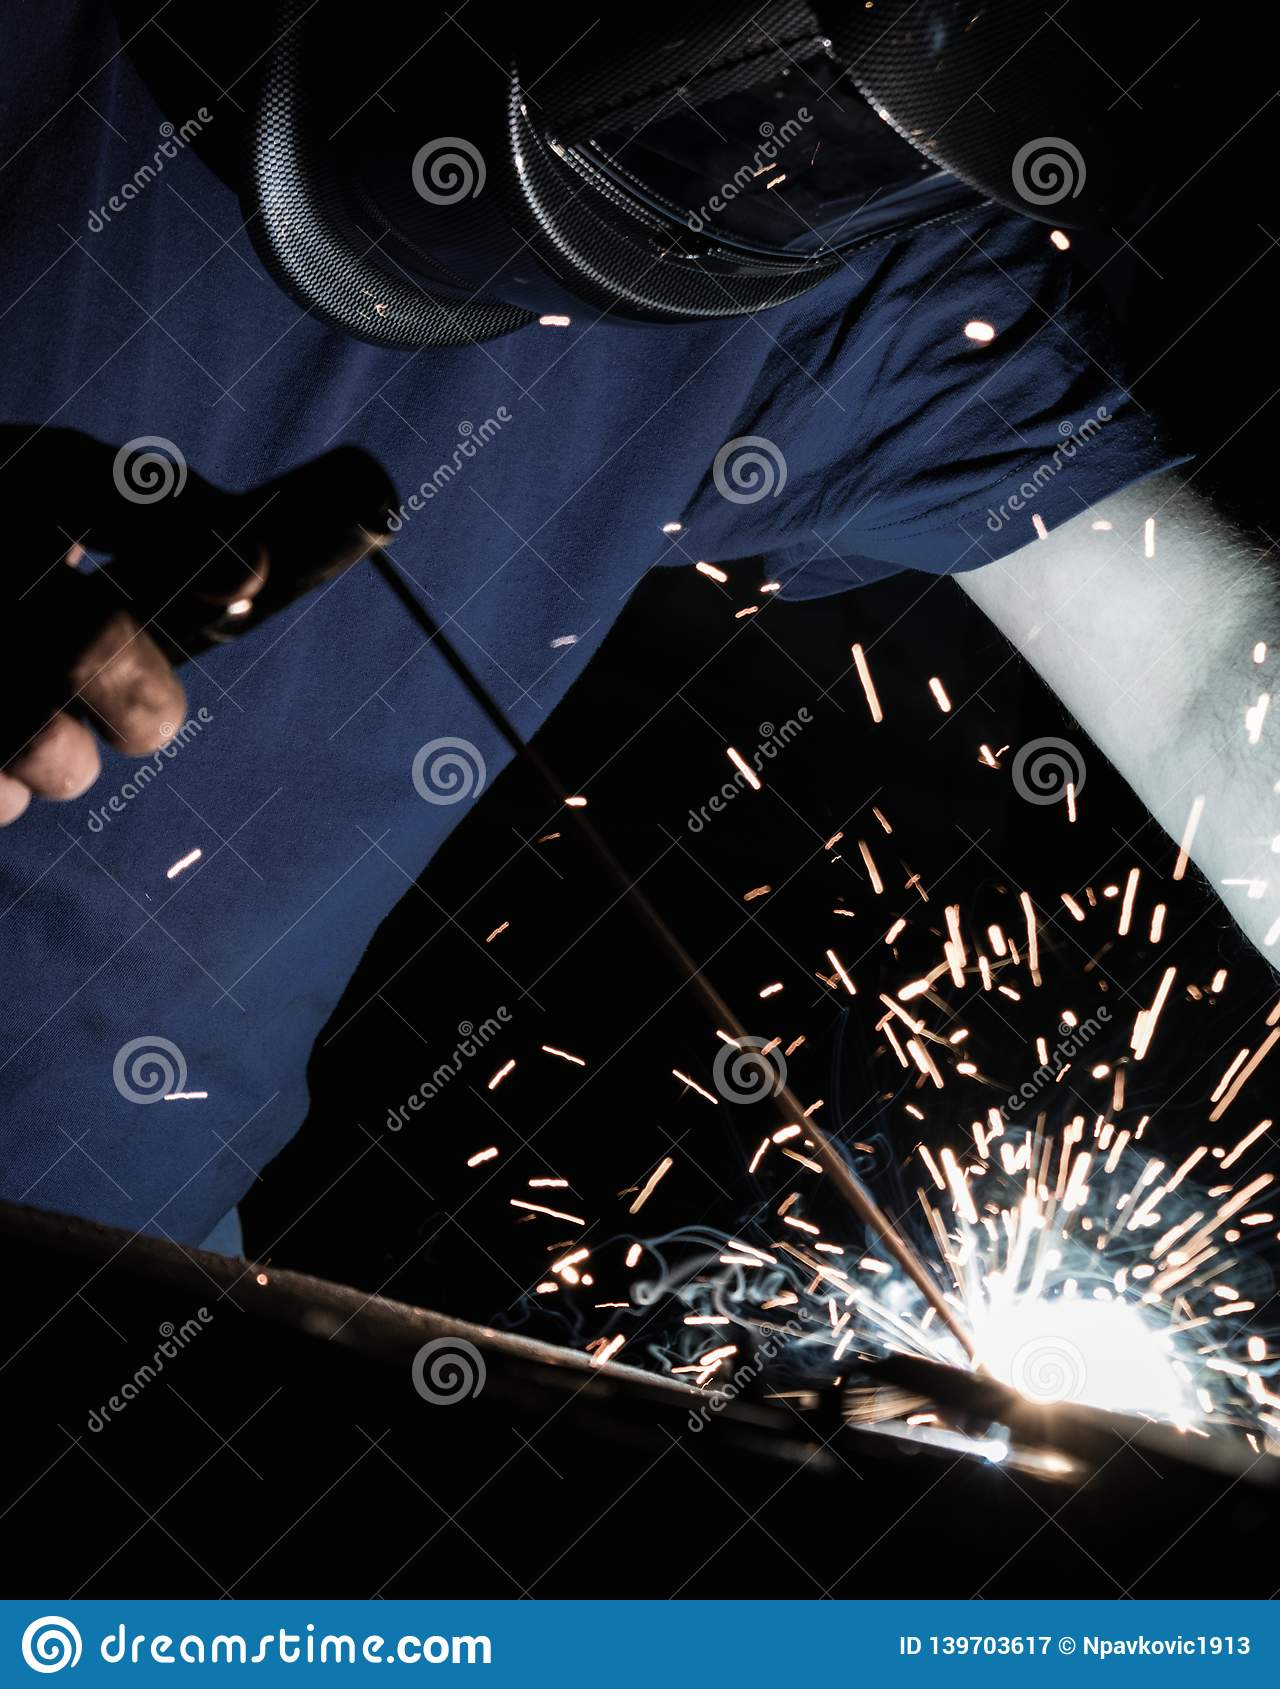 Man welding iron with a protective mask